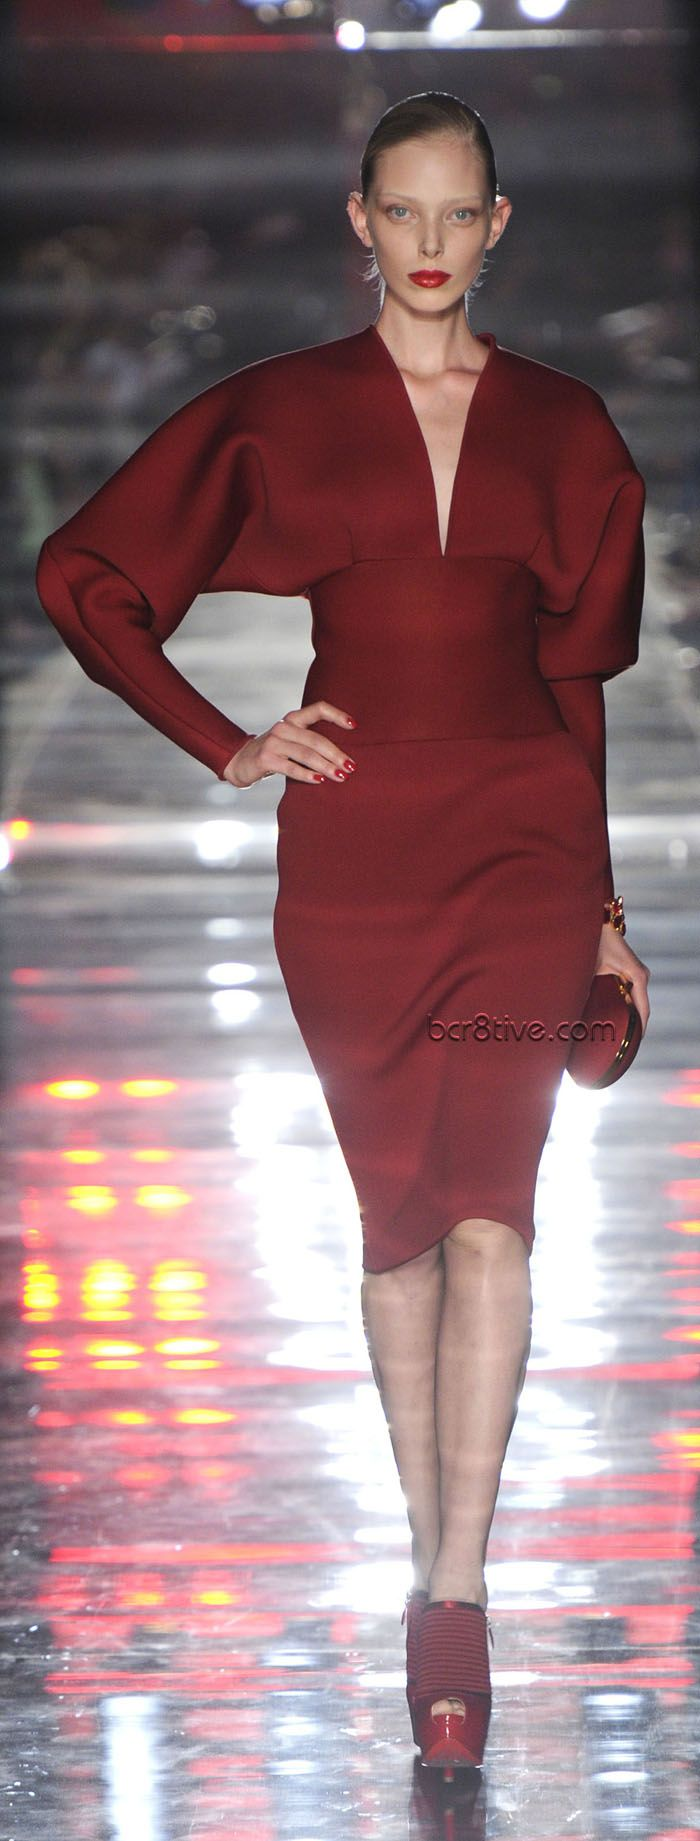 Alexandre Vauthier Fall Winter 2011 - 2012 Haute Couture Dark Red Evening Wear. I love this style of dress...:)